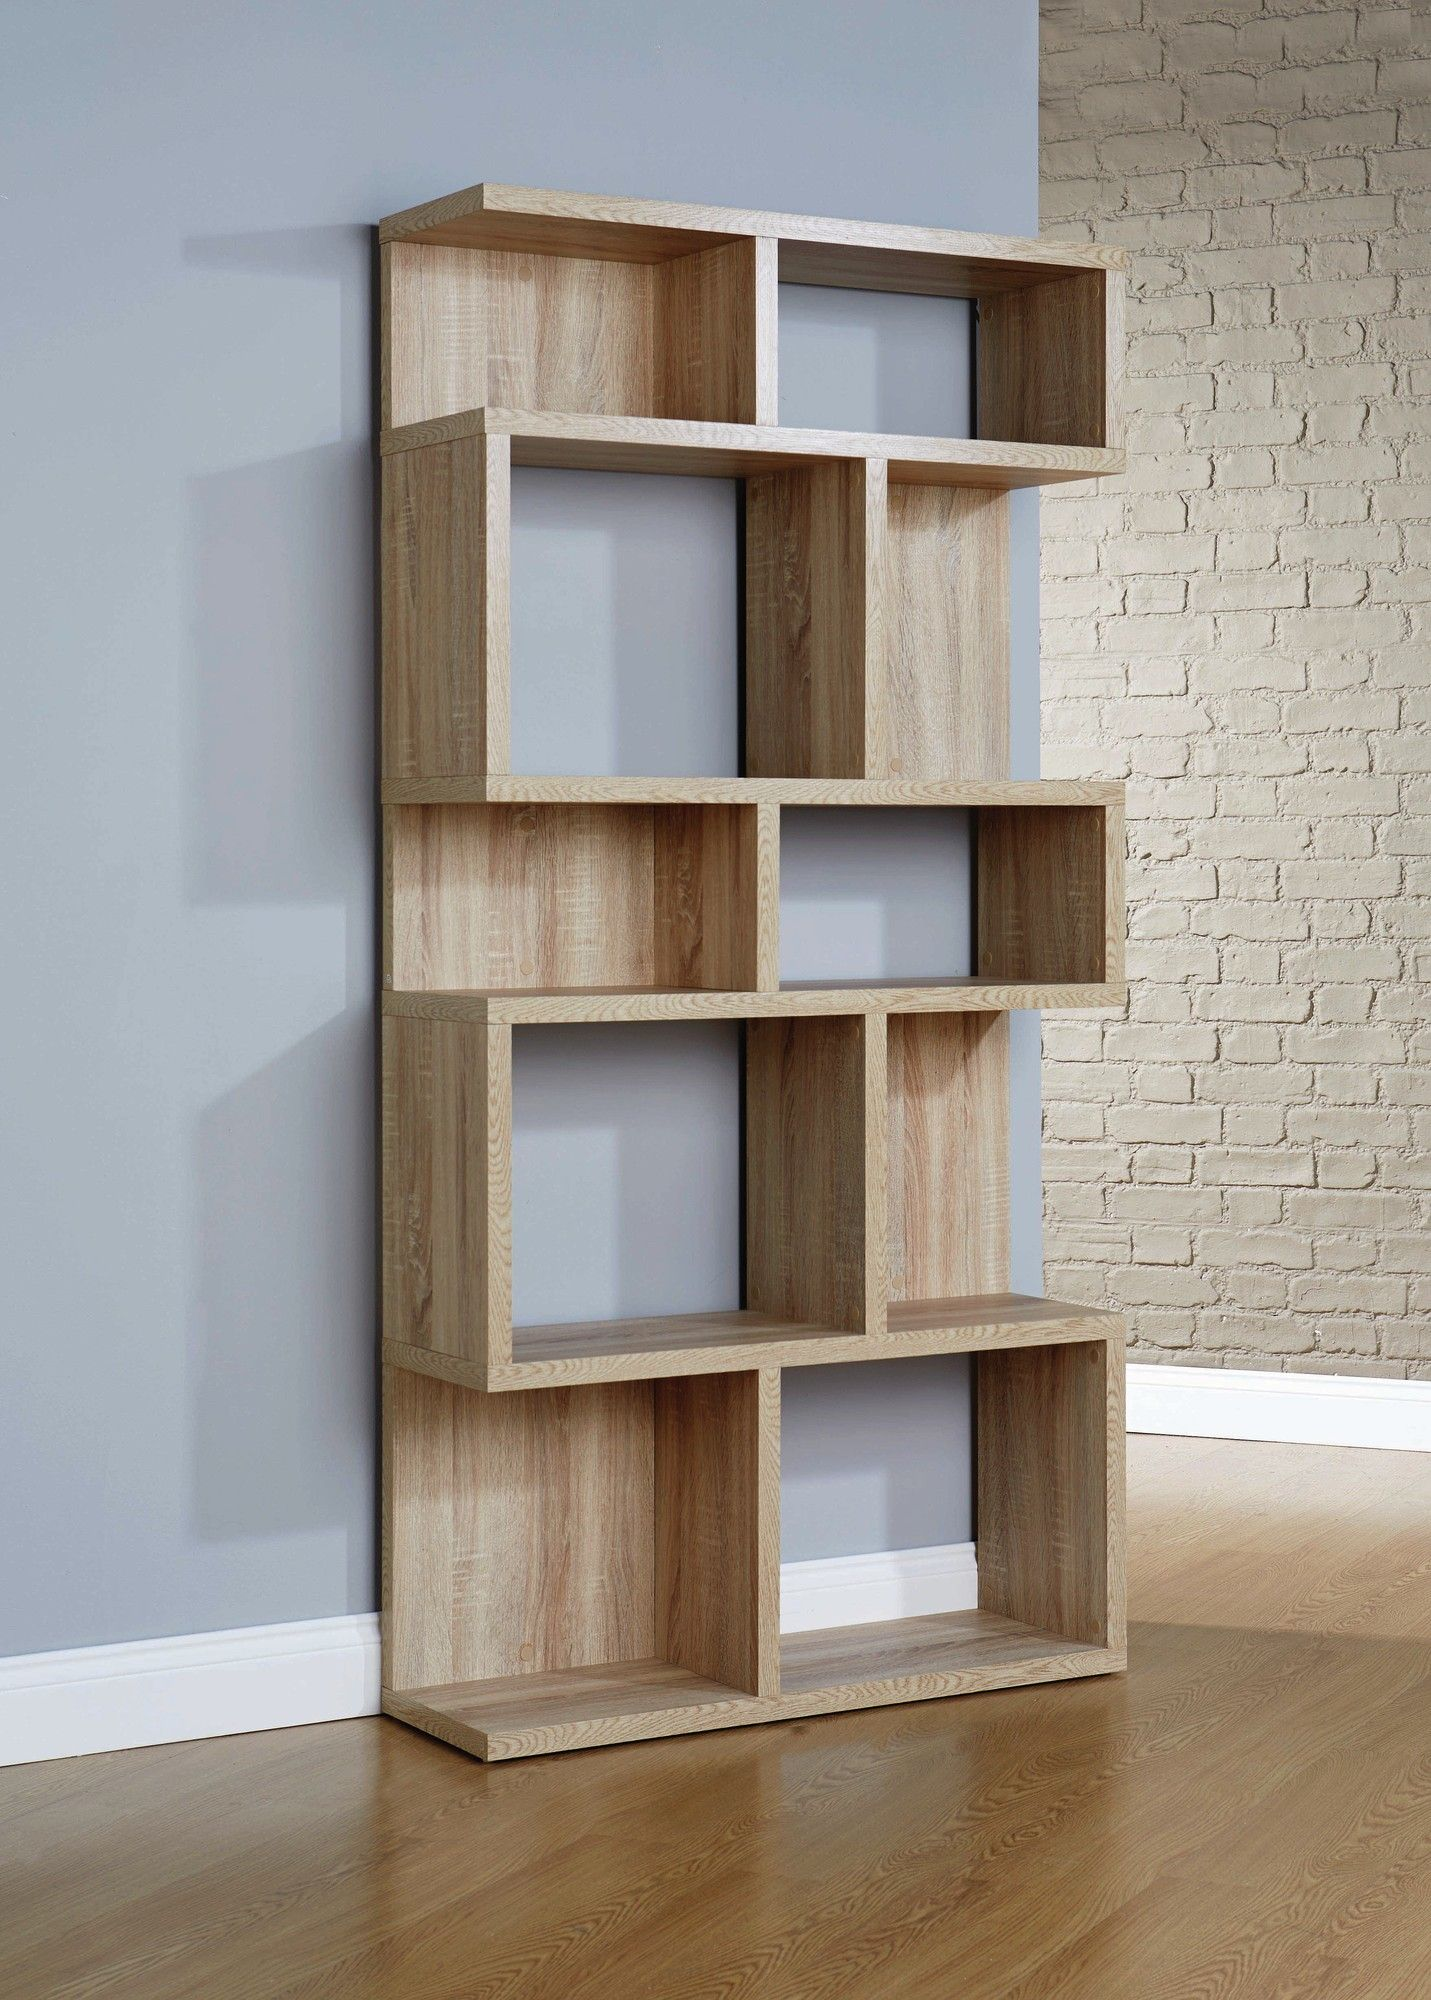 pembroke display unit home decor pinterest display shelves pembroke display unit bookcase 5 shelves wood oak veneer modern by mountrose